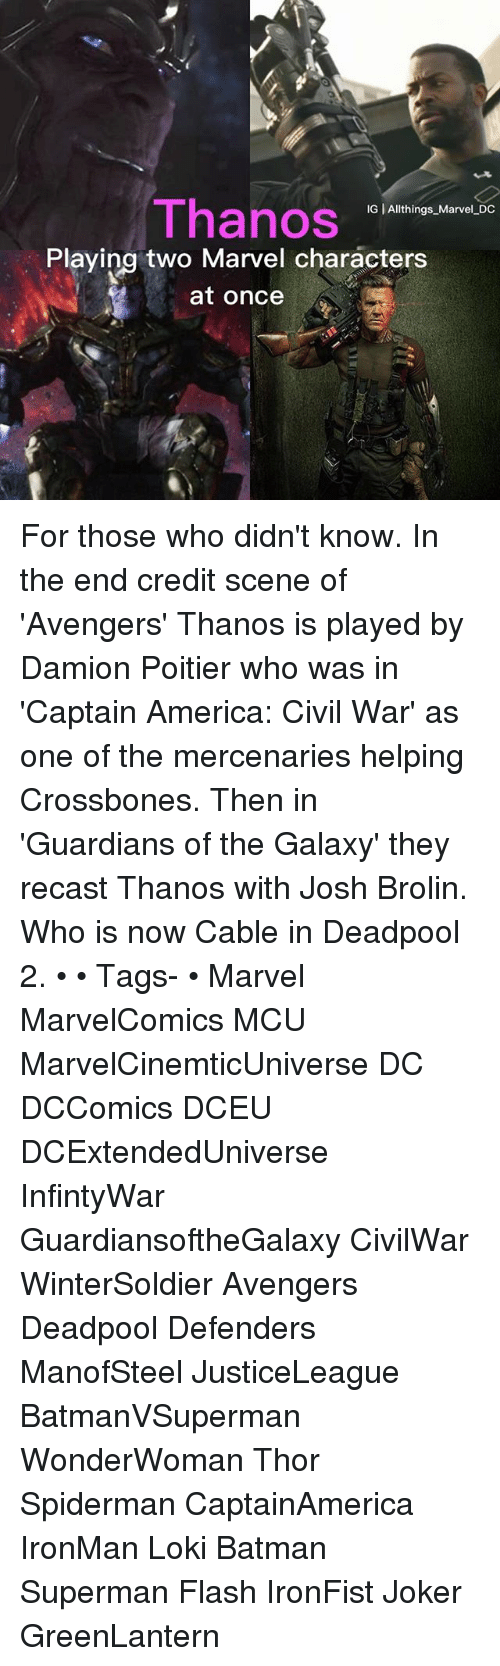 Civility: Thanos  IG | Allthings Marvel DC  Playing two Marvel characters  at once For those who didn't know. In the end credit scene of 'Avengers' Thanos is played by Damion Poitier who was in 'Captain America: Civil War' as one of the mercenaries helping Crossbones. Then in 'Guardians of the Galaxy' they recast Thanos with Josh Brolin. Who is now Cable in Deadpool 2. • • Tags- • Marvel MarvelComics MCU MarvelCinemticUniverse DC DCComics DCEU DCExtendedUniverse InfintyWar GuardiansoftheGalaxy CivilWar WinterSoldier Avengers Deadpool Defenders ManofSteel JusticeLeague BatmanVSuperman WonderWoman Thor Spiderman CaptainAmerica IronMan Loki Batman Superman Flash IronFist Joker GreenLantern